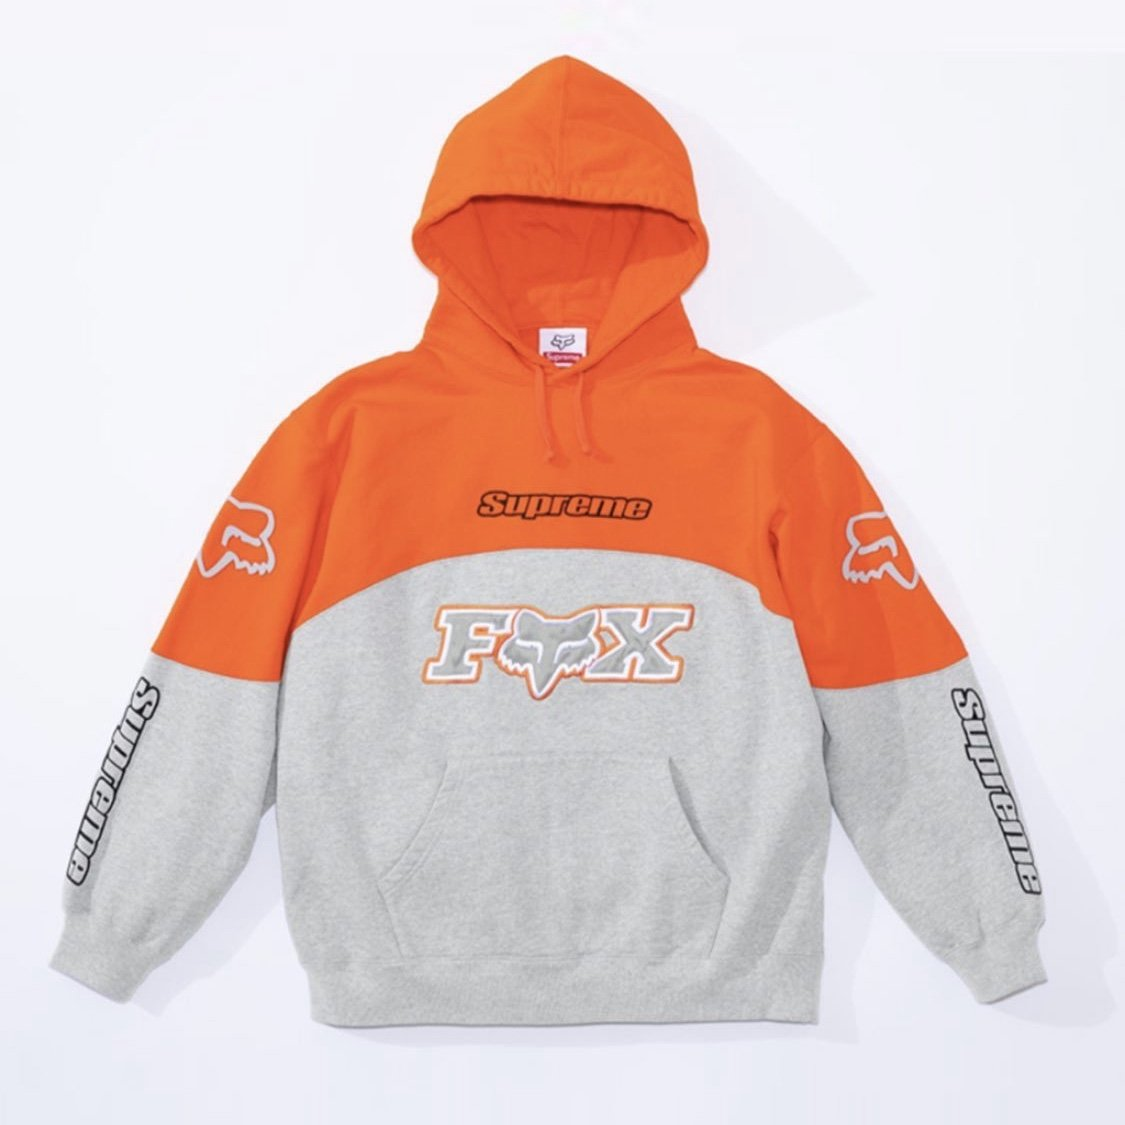 supreme-20aw-20fw-supreme-fox-racing-hooded-sweatshirt